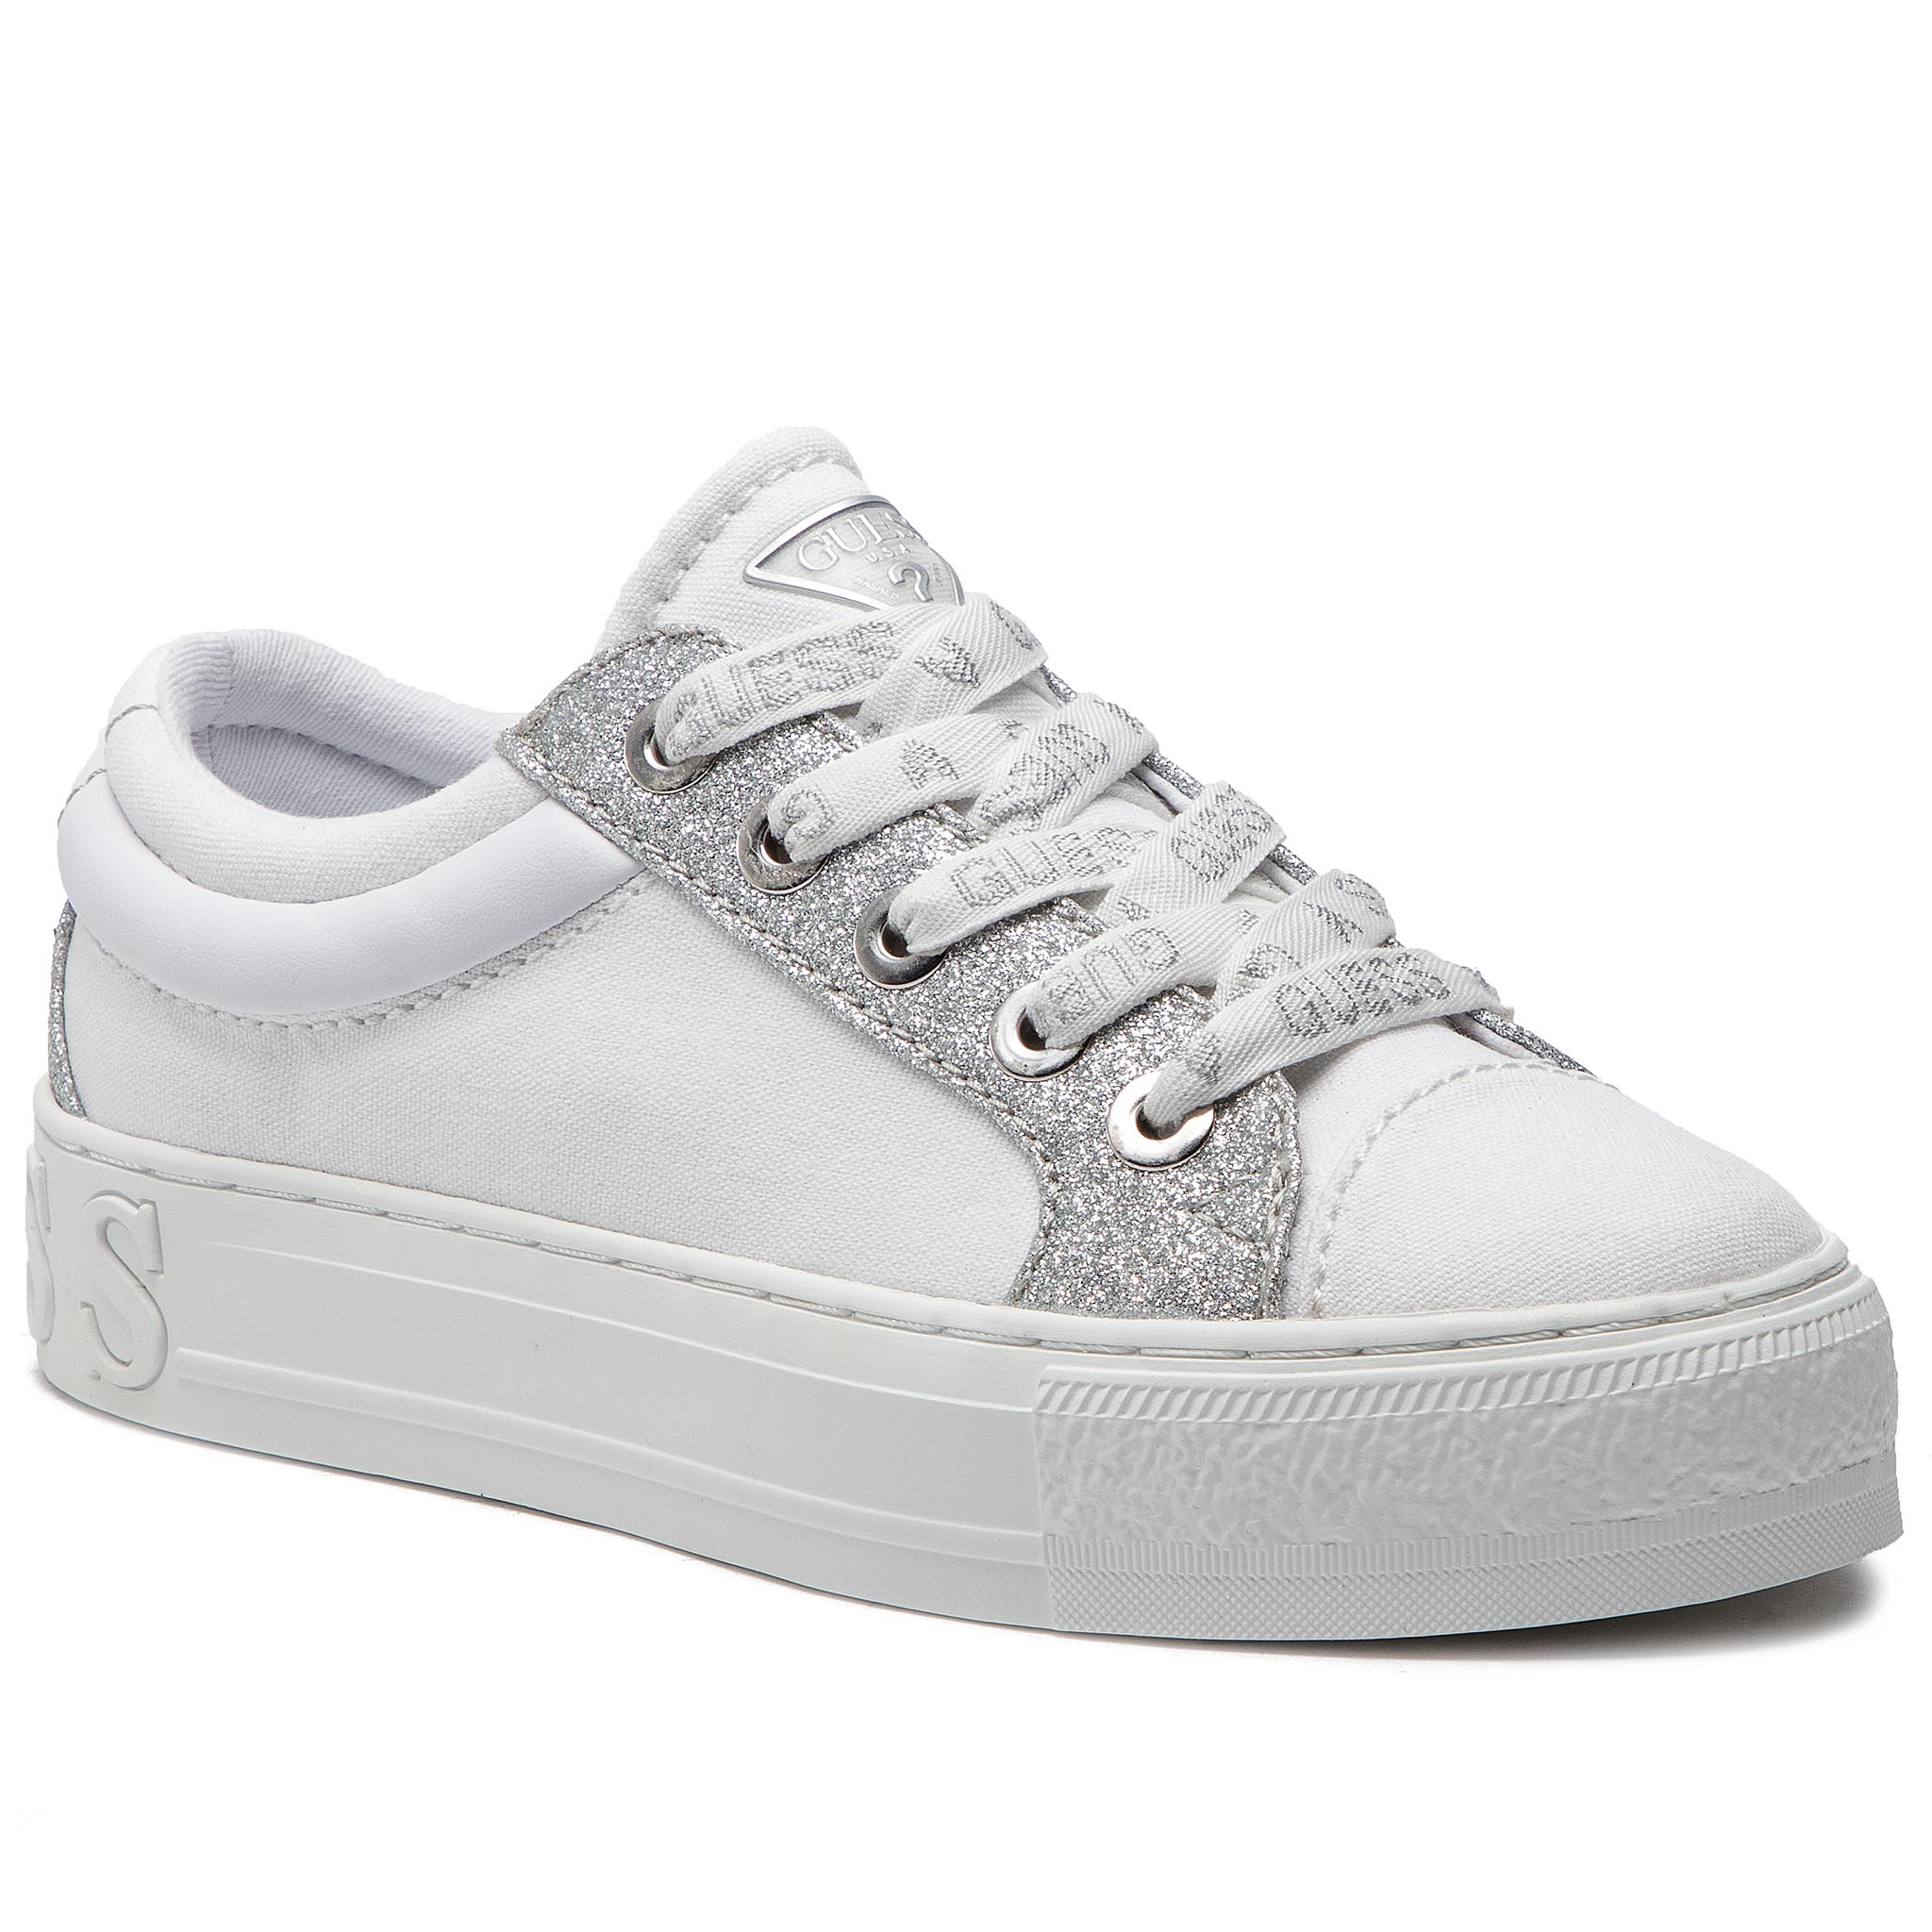 White Fab12 Glami ro Sneakers Guess Fl5ly5 qUzLSMVpG